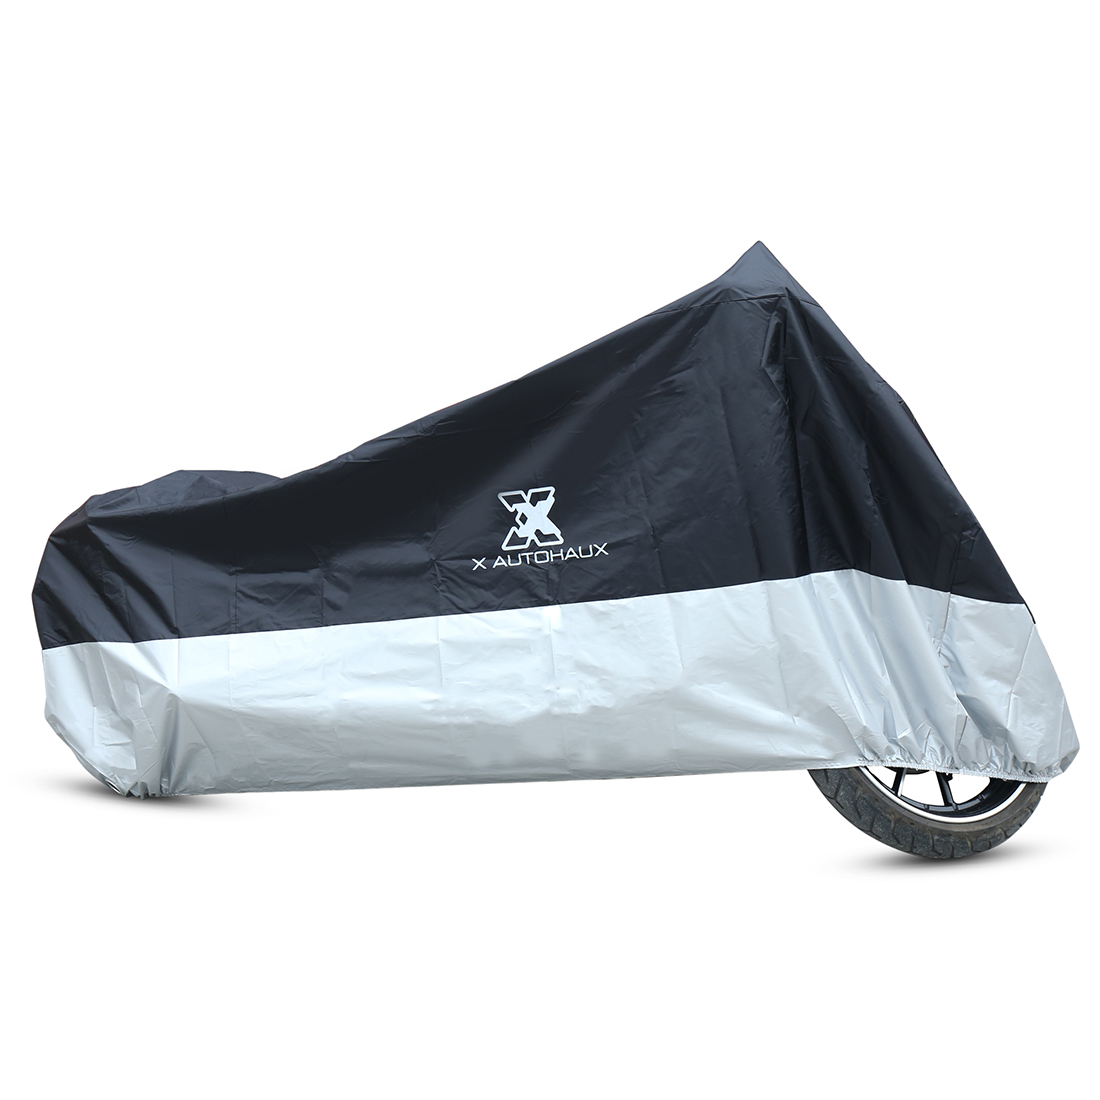 Motorcycle Bike Cover Travel Dust Cover For Honda CR CRF 80 85 125 250 450 500